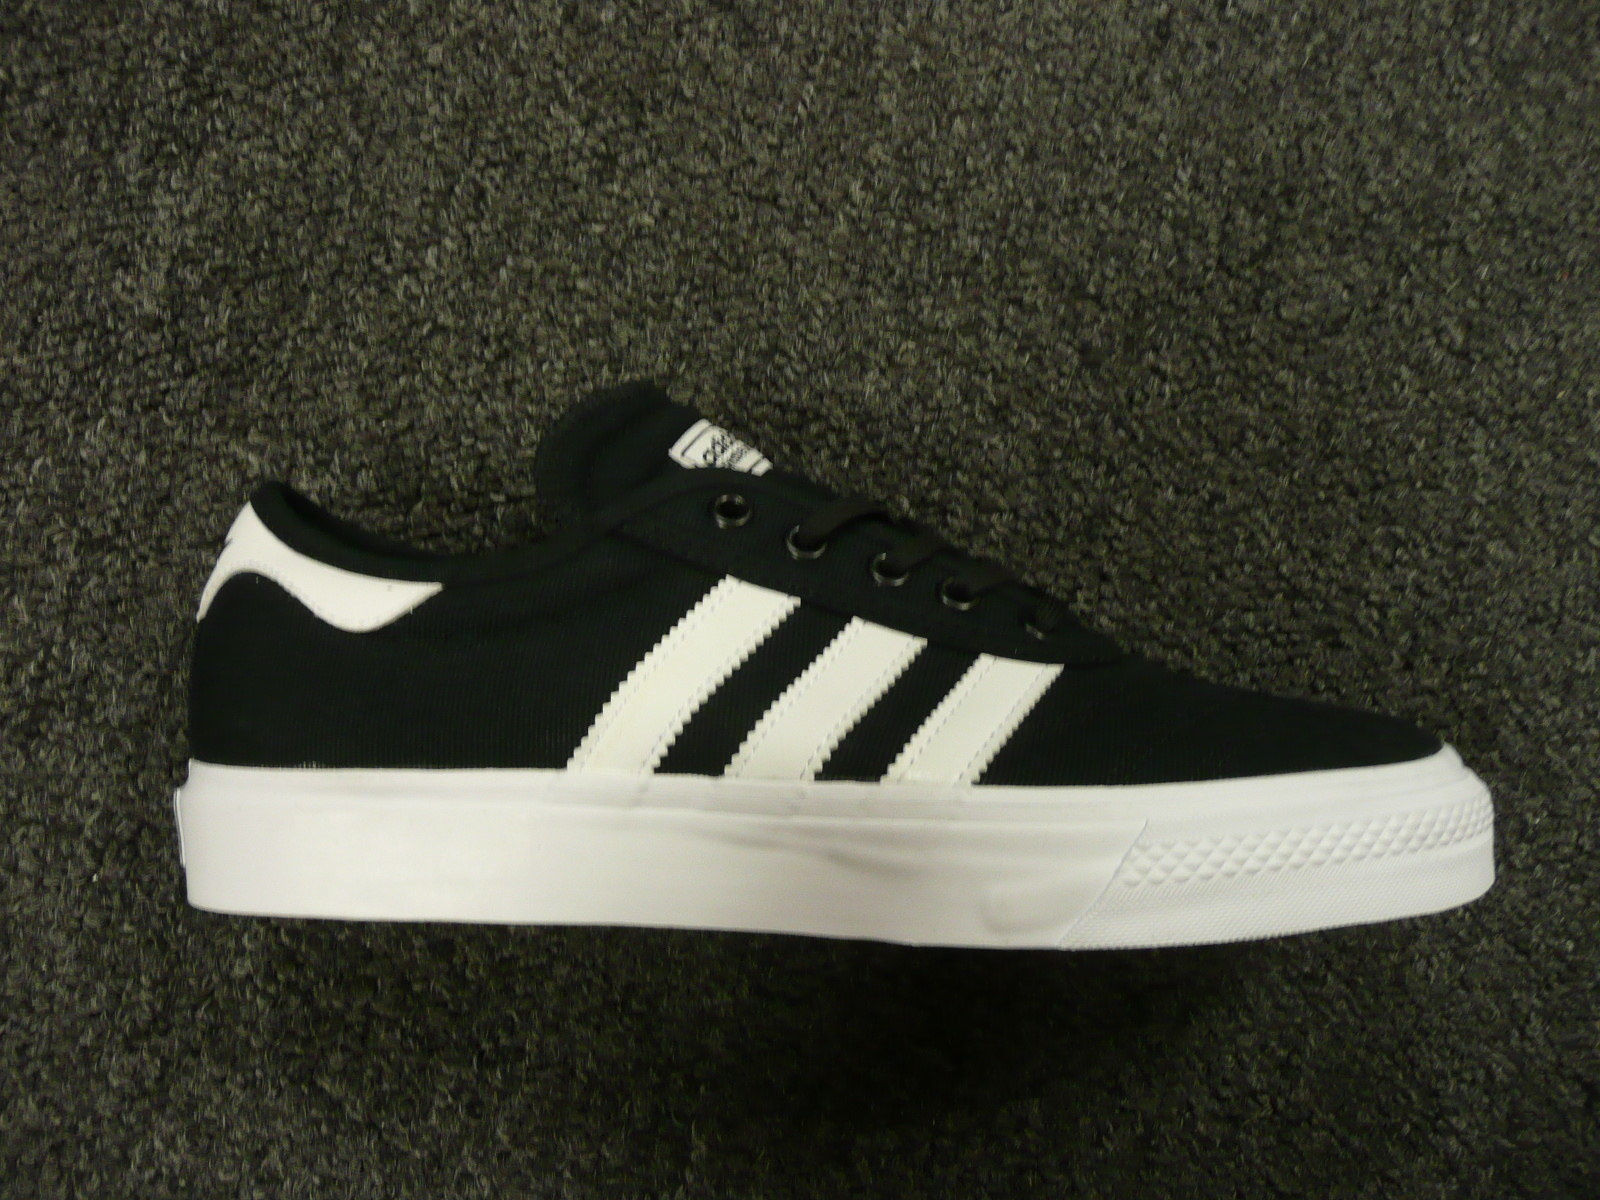 Adidas Adi Ease Premier Skate Shoes BlackWhite